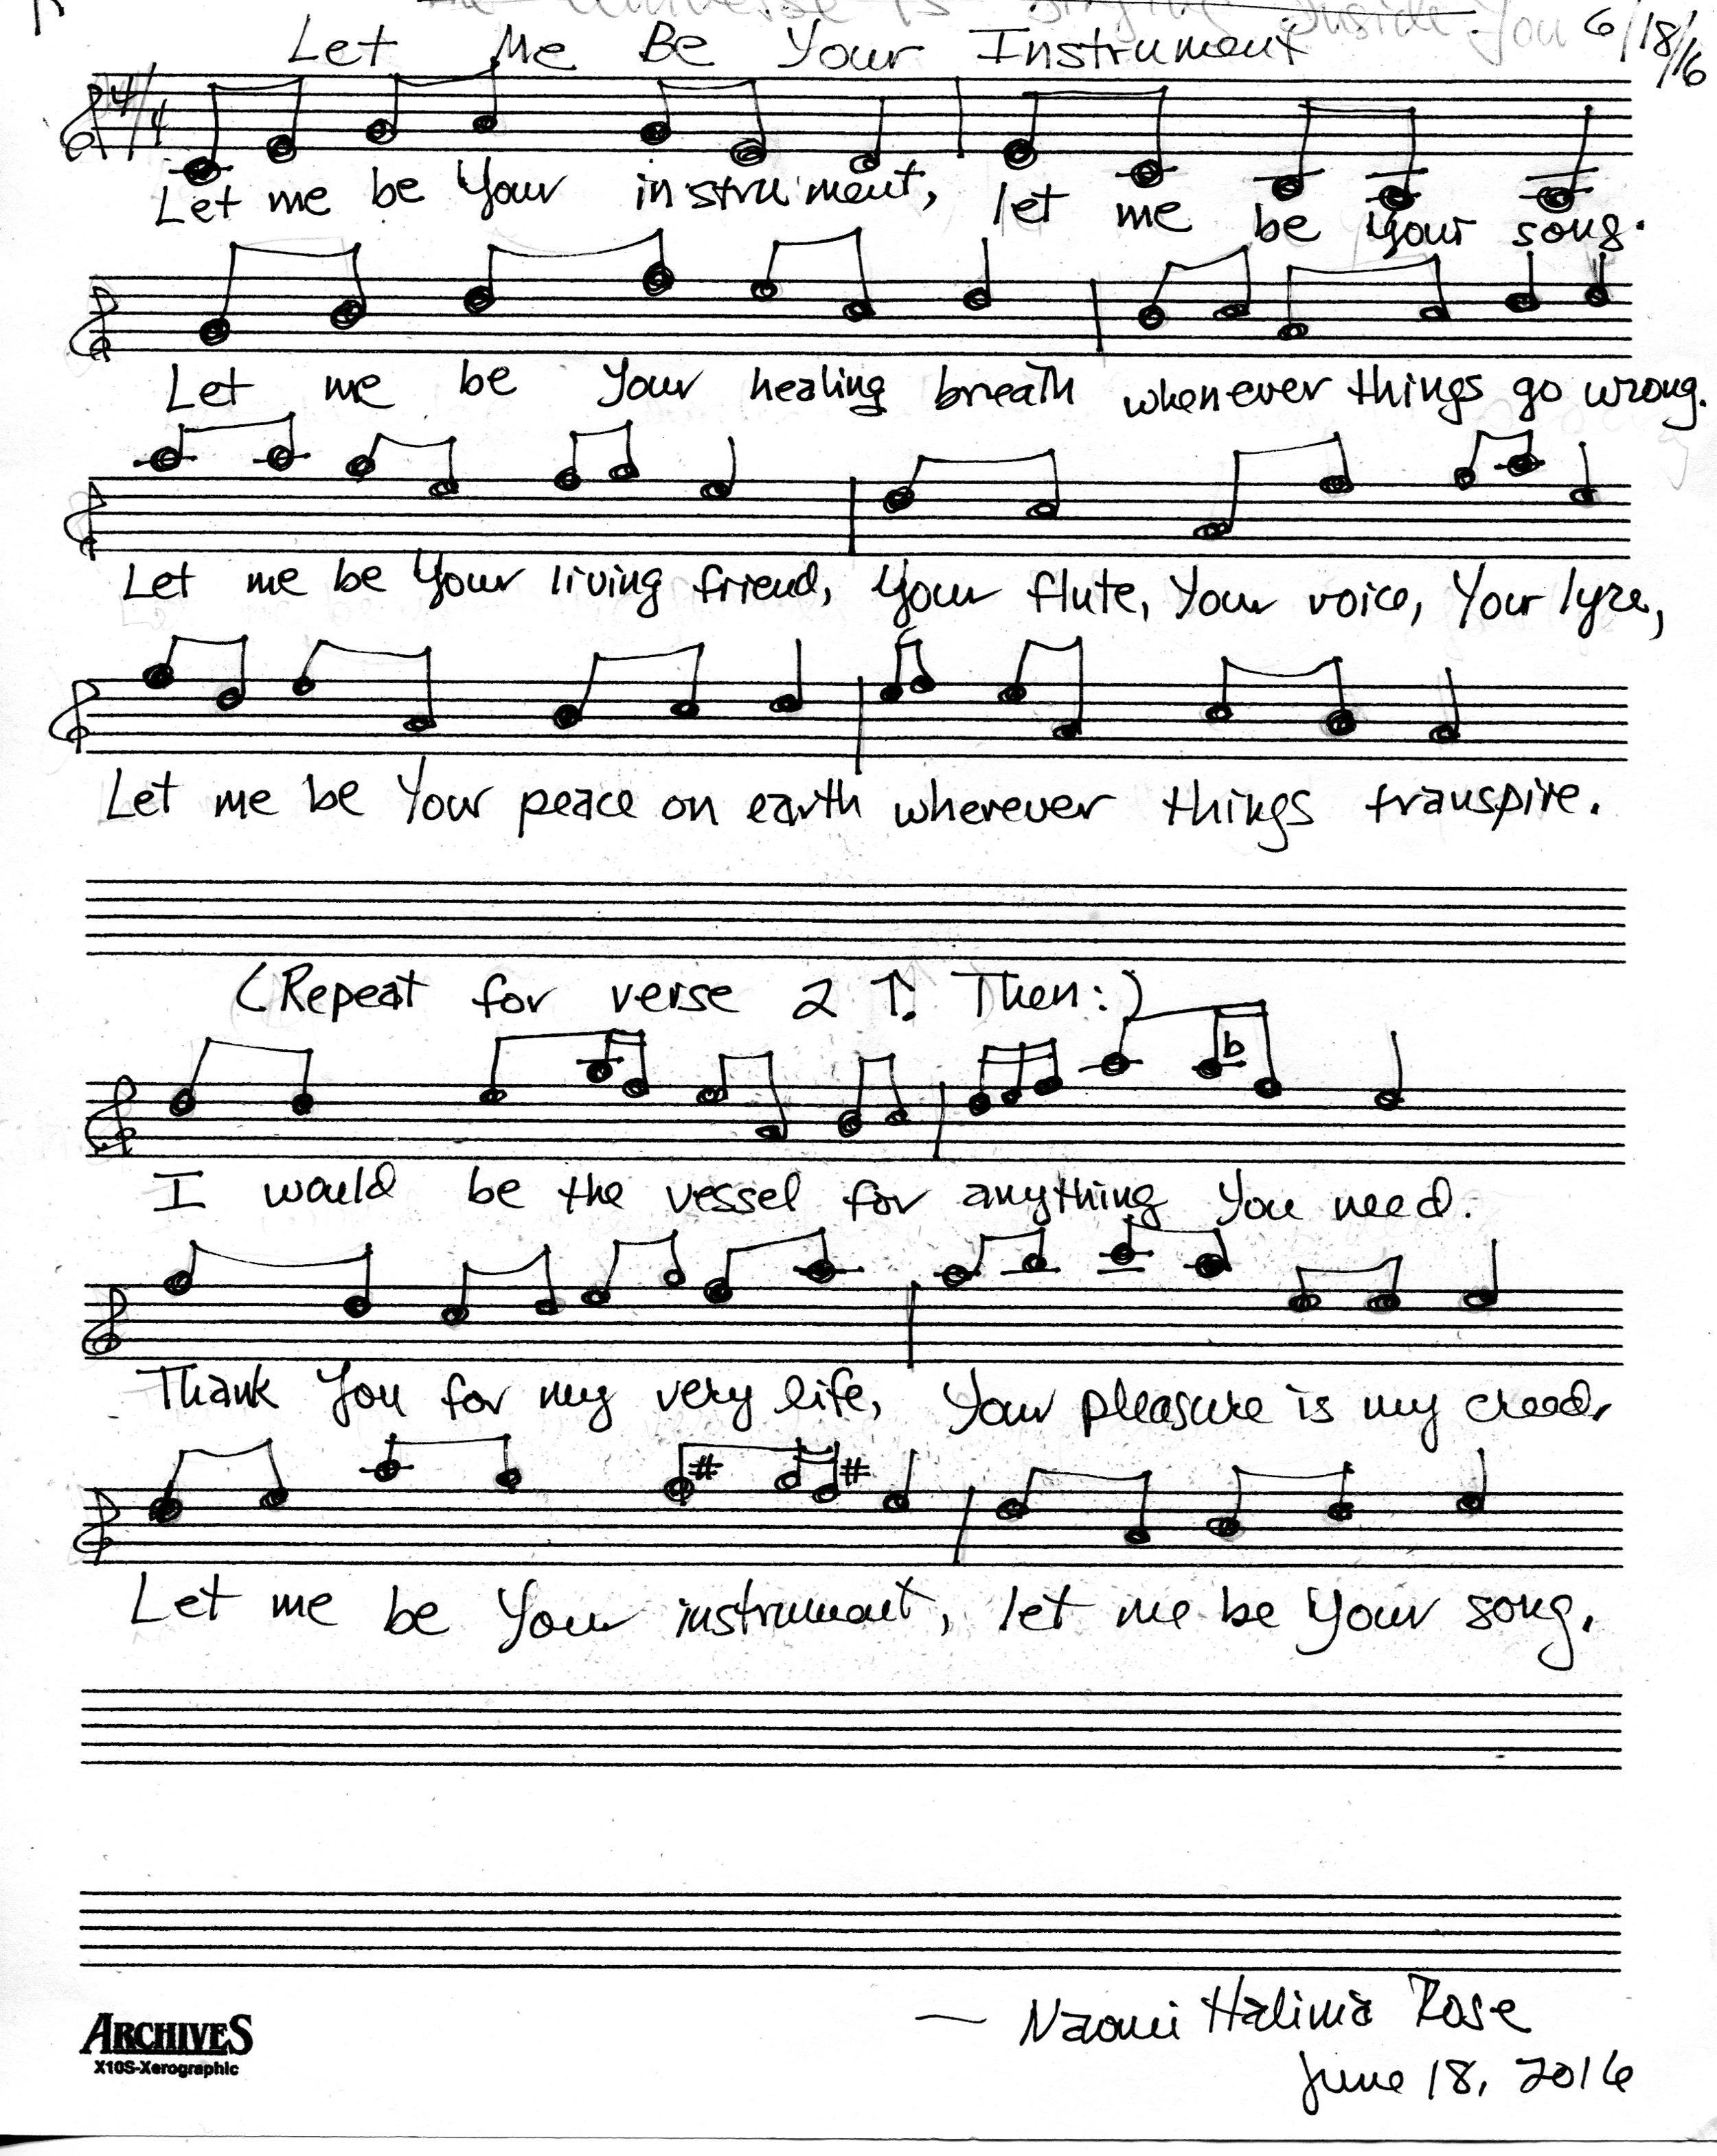 Sheet music, Let Me Be Your Instrument (Naomi).jpg